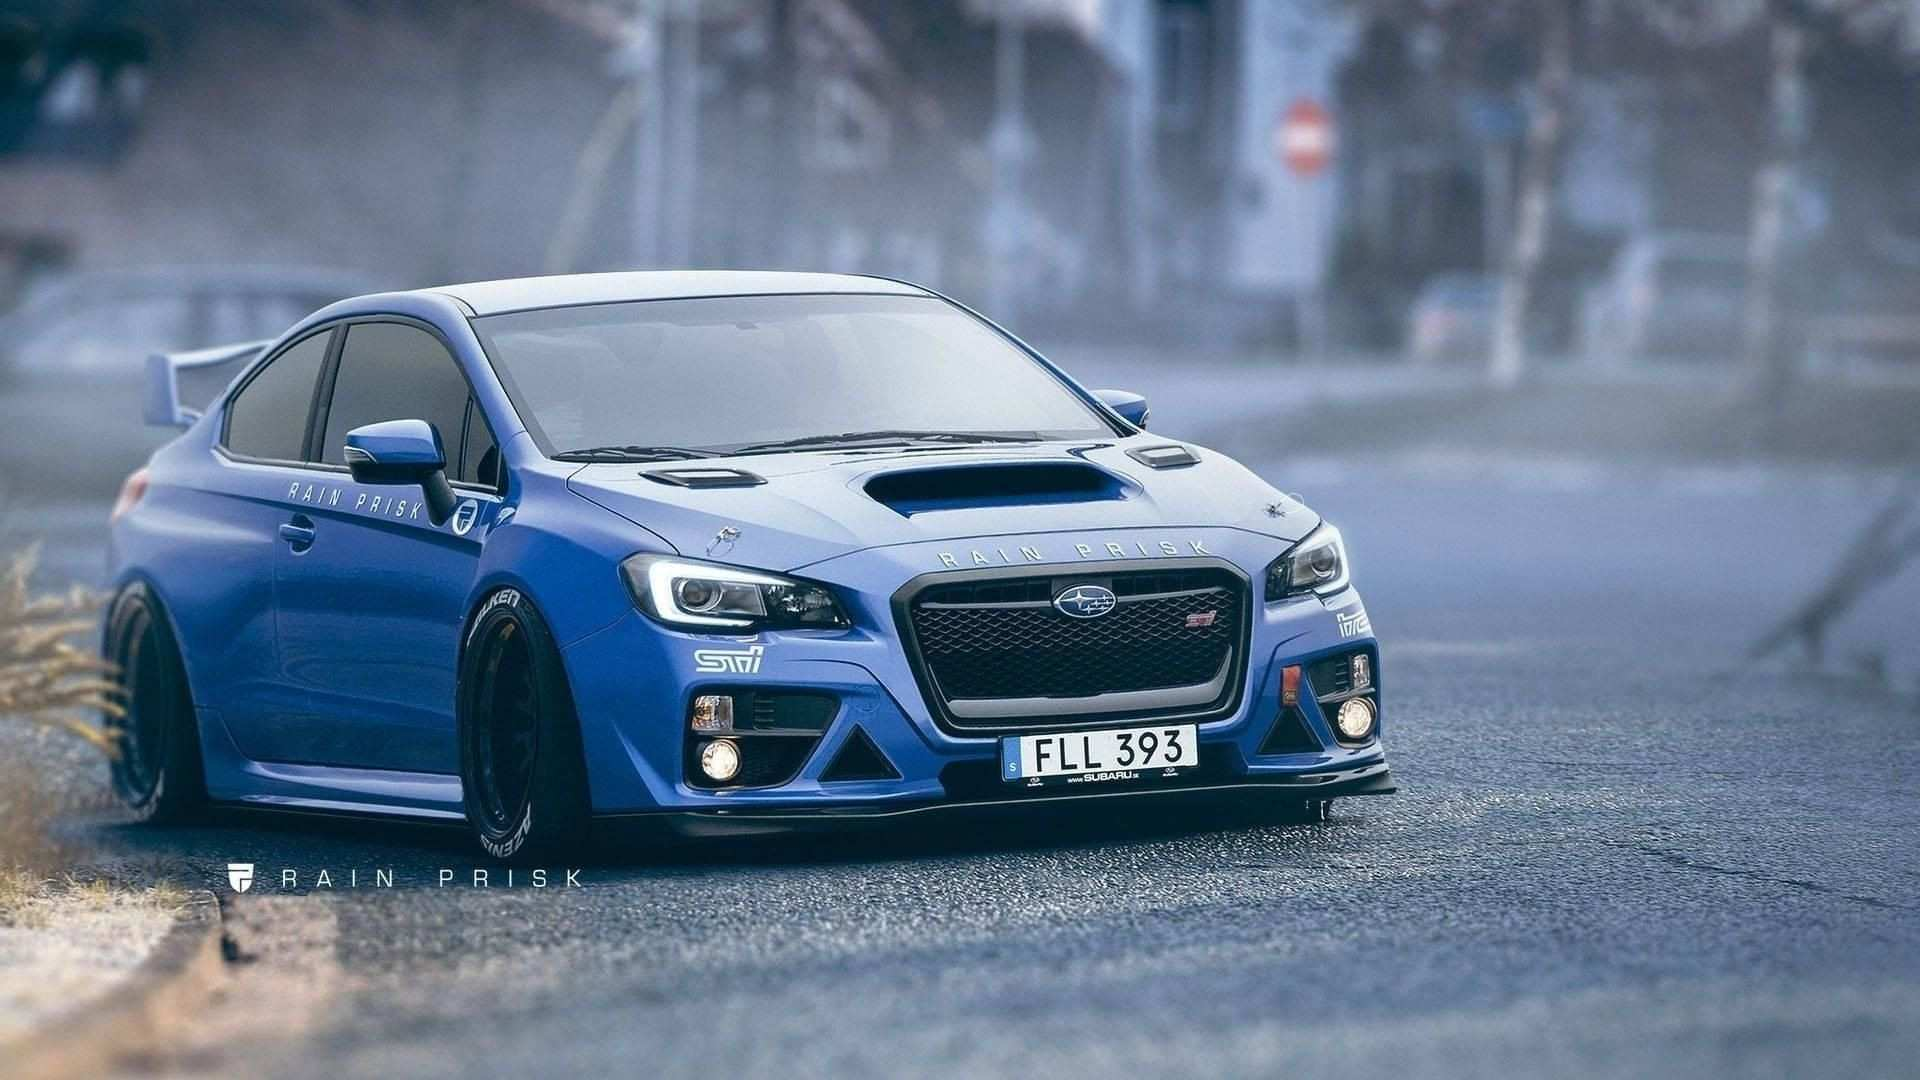 91 Great The Subaru Sti Wagon 2019 Specs And Review First Drive by The Subaru Sti Wagon 2019 Specs And Review